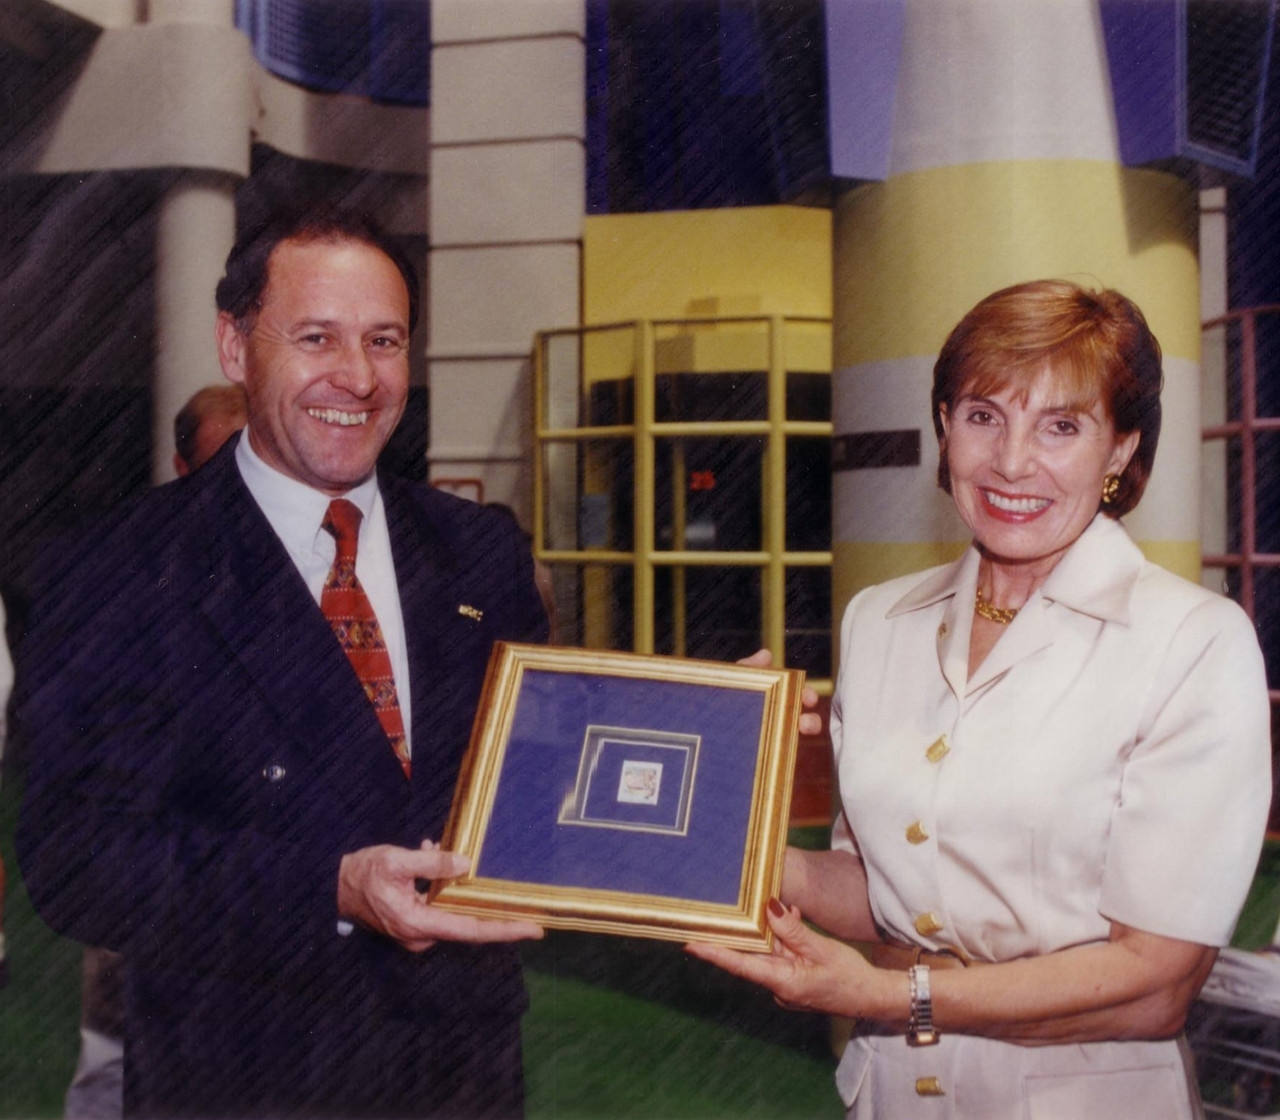 Dame Rosie pictured in 1996 with Sir Ralph Norris who presents a cheque on behalf of ASB.